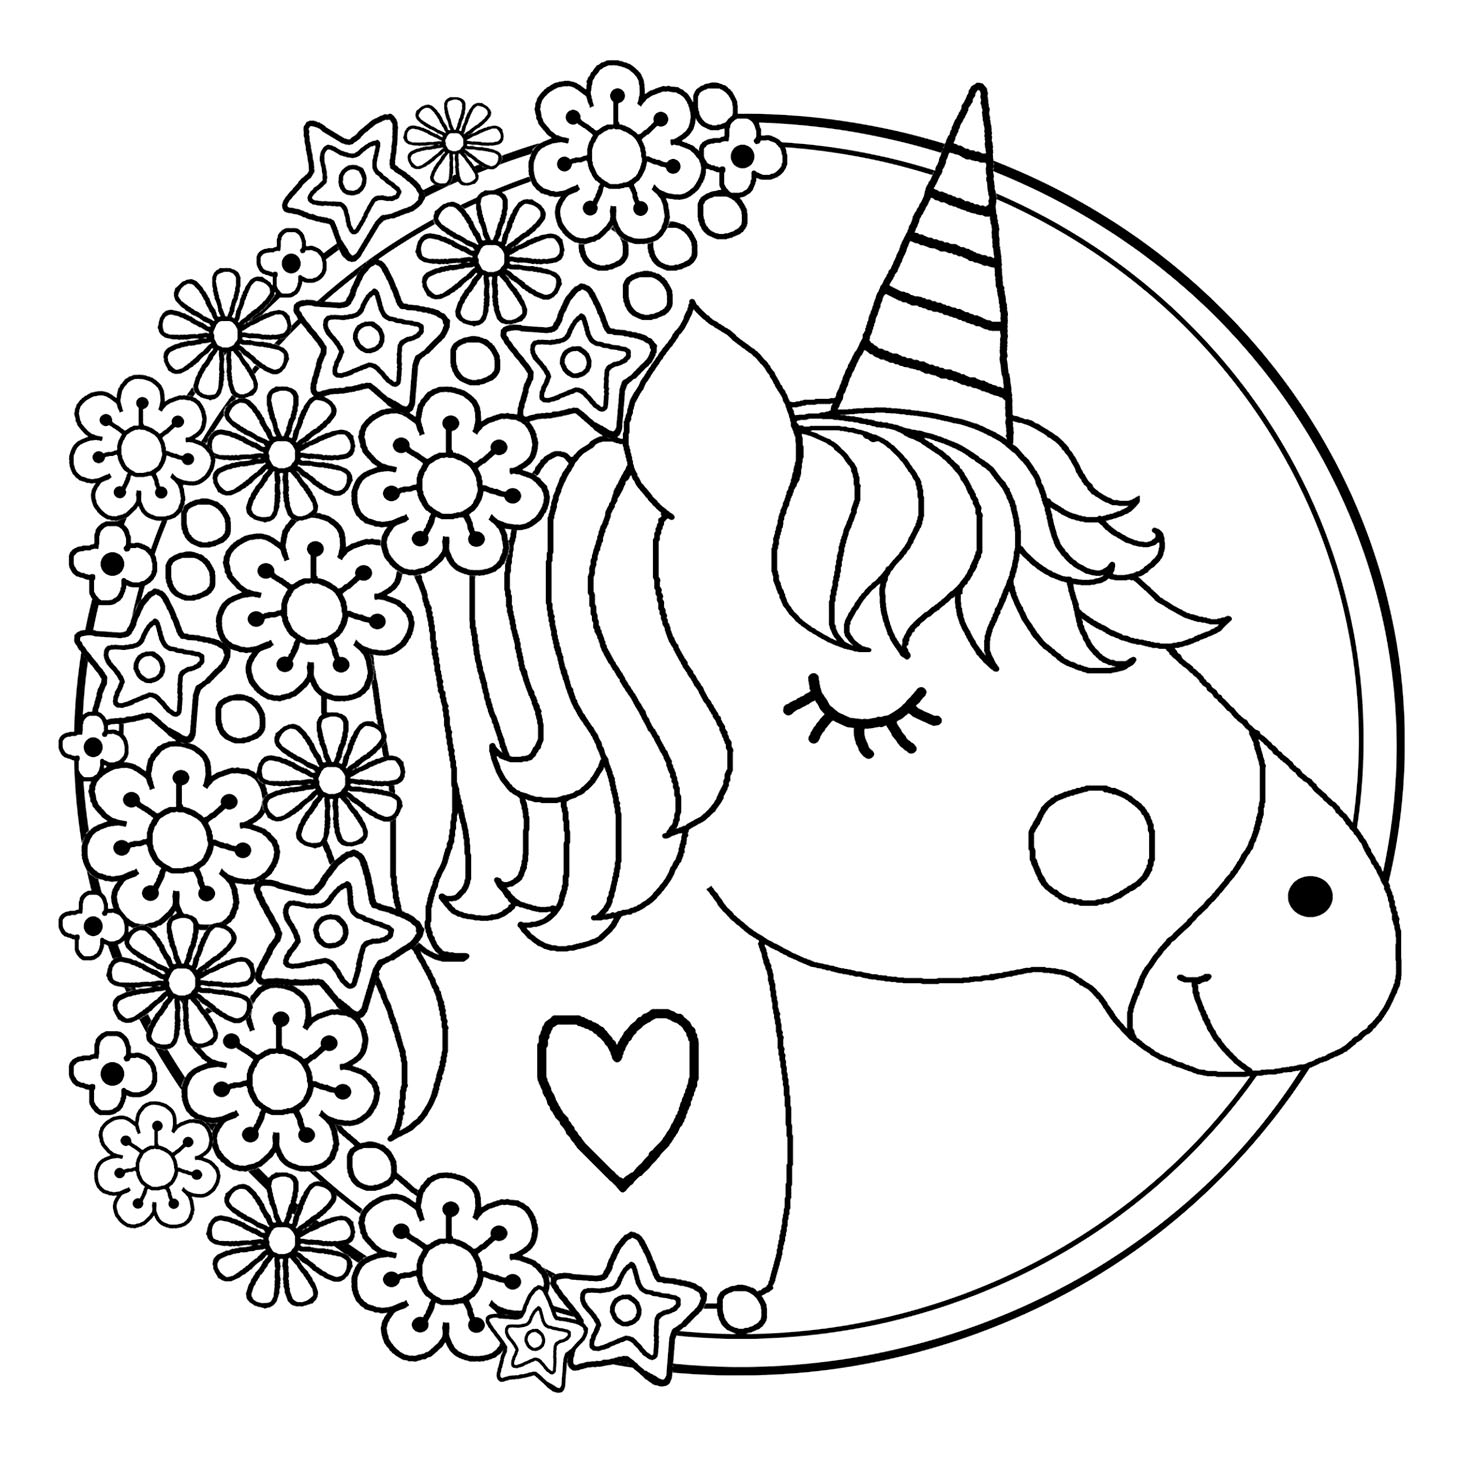 free coloring sheets unicorn free printable unicorn coloring pages for kids coloring sheets unicorn free